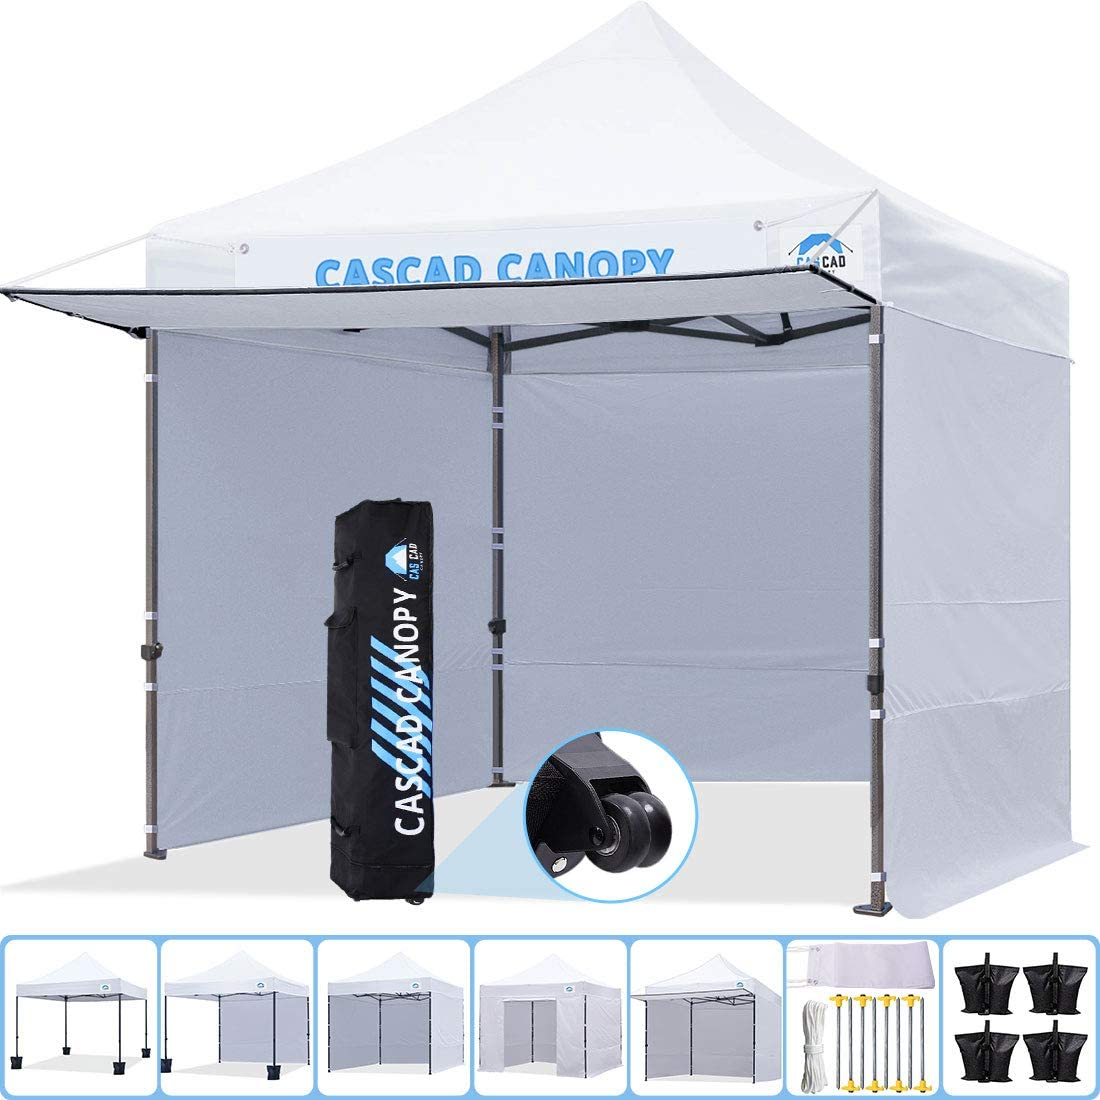 CASCAD CANOPY 10 x10 Ez Pop-Up Canopy Commercial Instant Tent Shelter with DIY Banner, Heavy Duty Roller Bag, 4 Removable Sidewalls, 1 Canopy Awning, 4 Sandbags,White